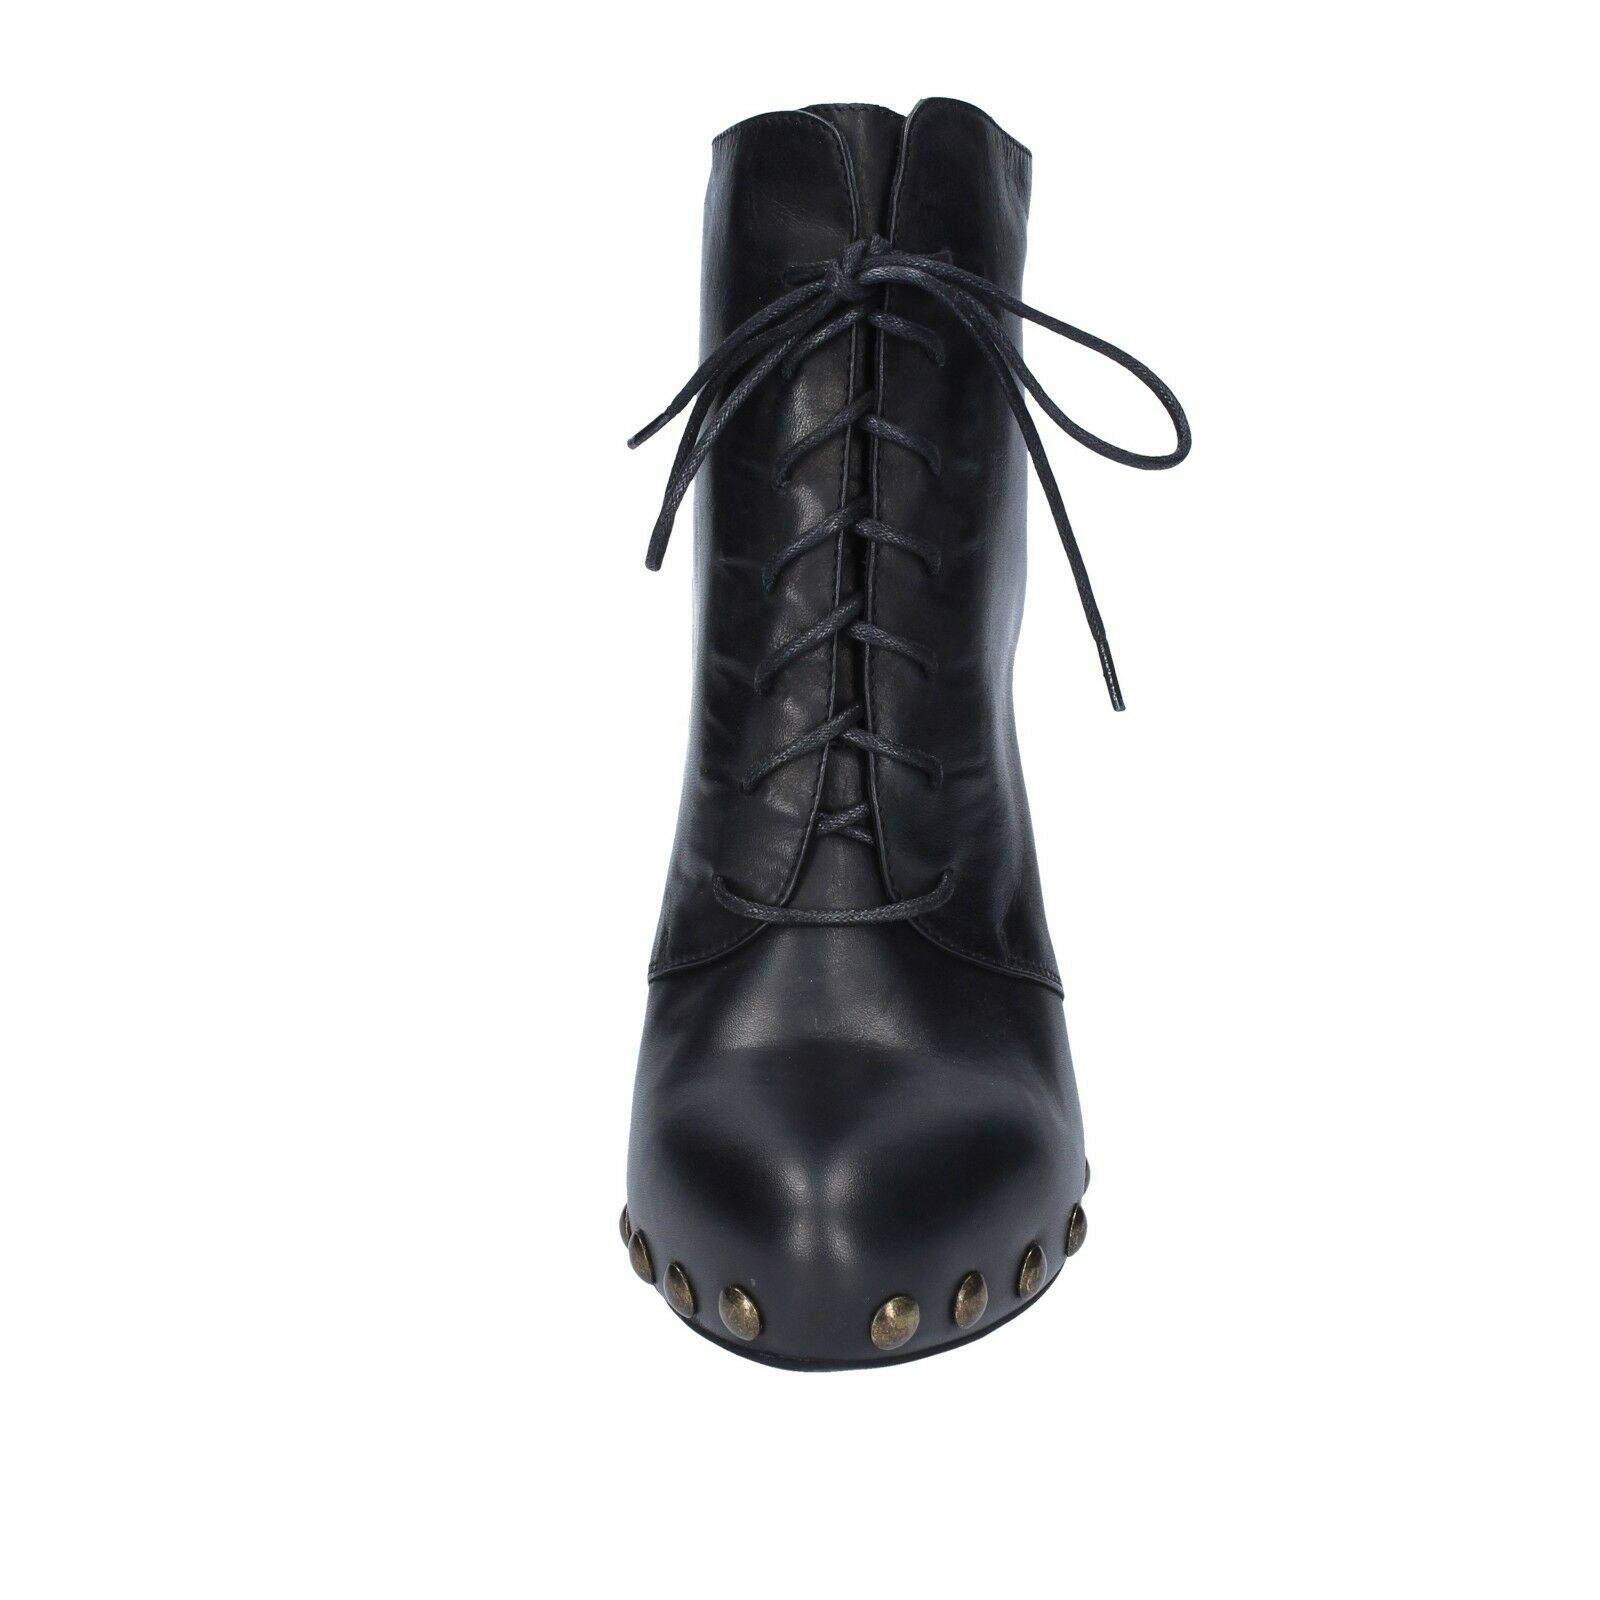 Women's shoes VIC 5 (EU 35) ankle boots black leather leather leather AY141 32c0b2